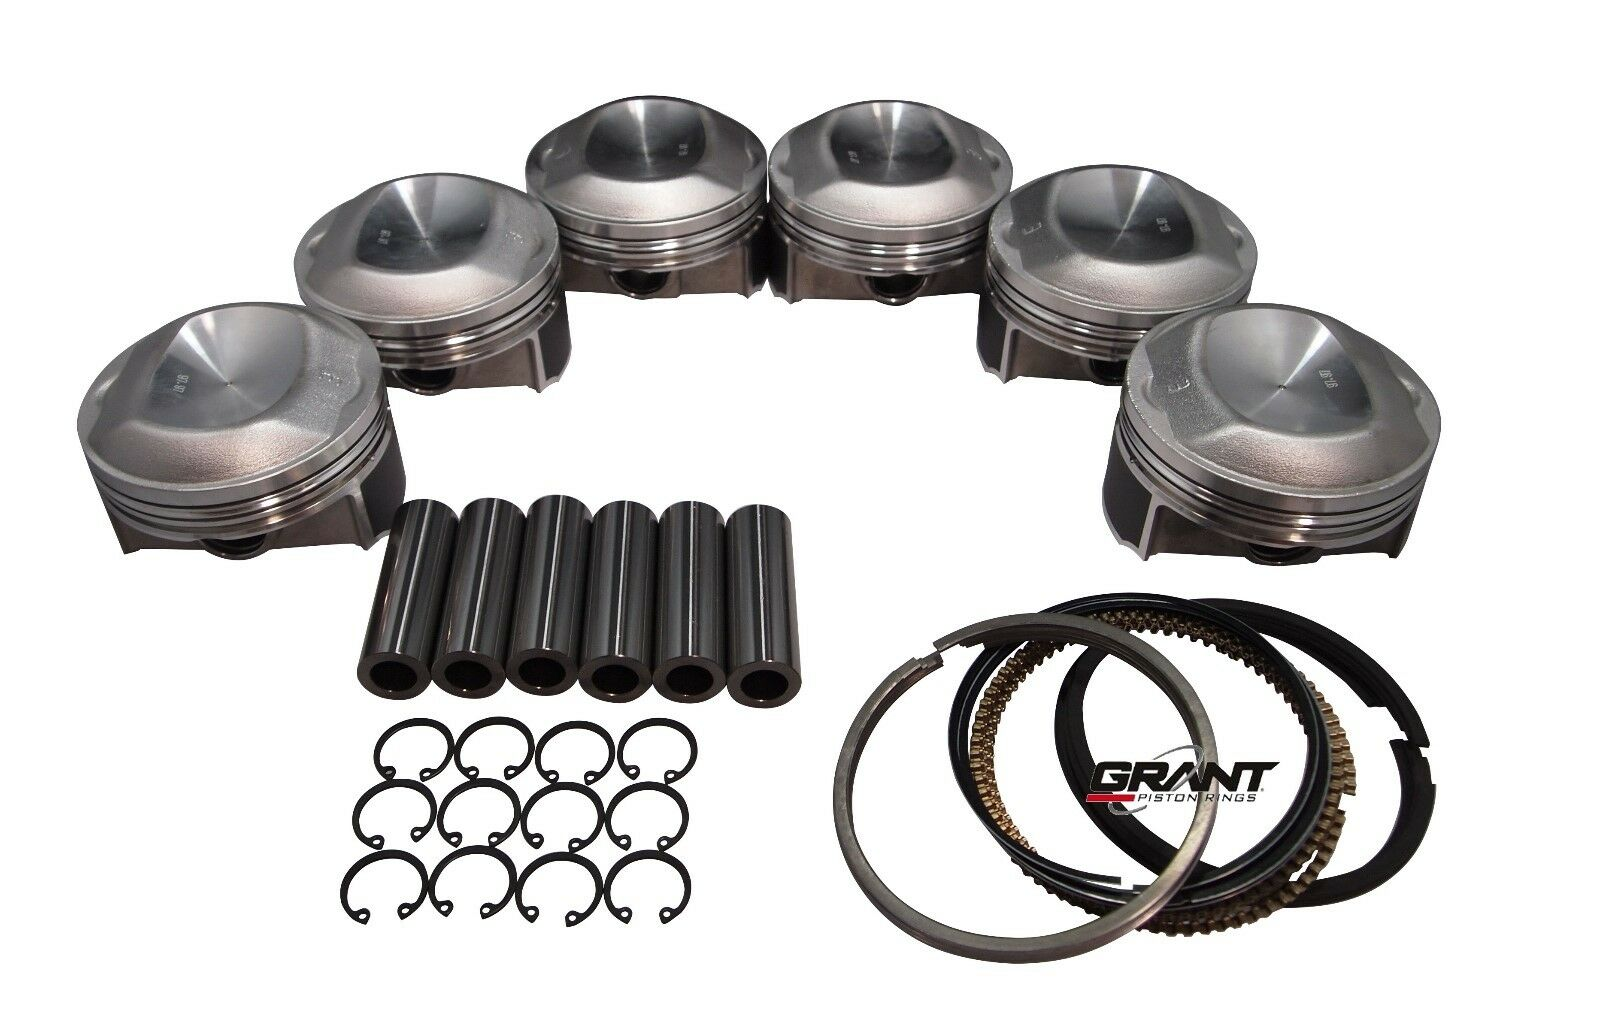 Qsc Porsche 911 98mm Pistons Set Cr 10 5 With Grant Piston